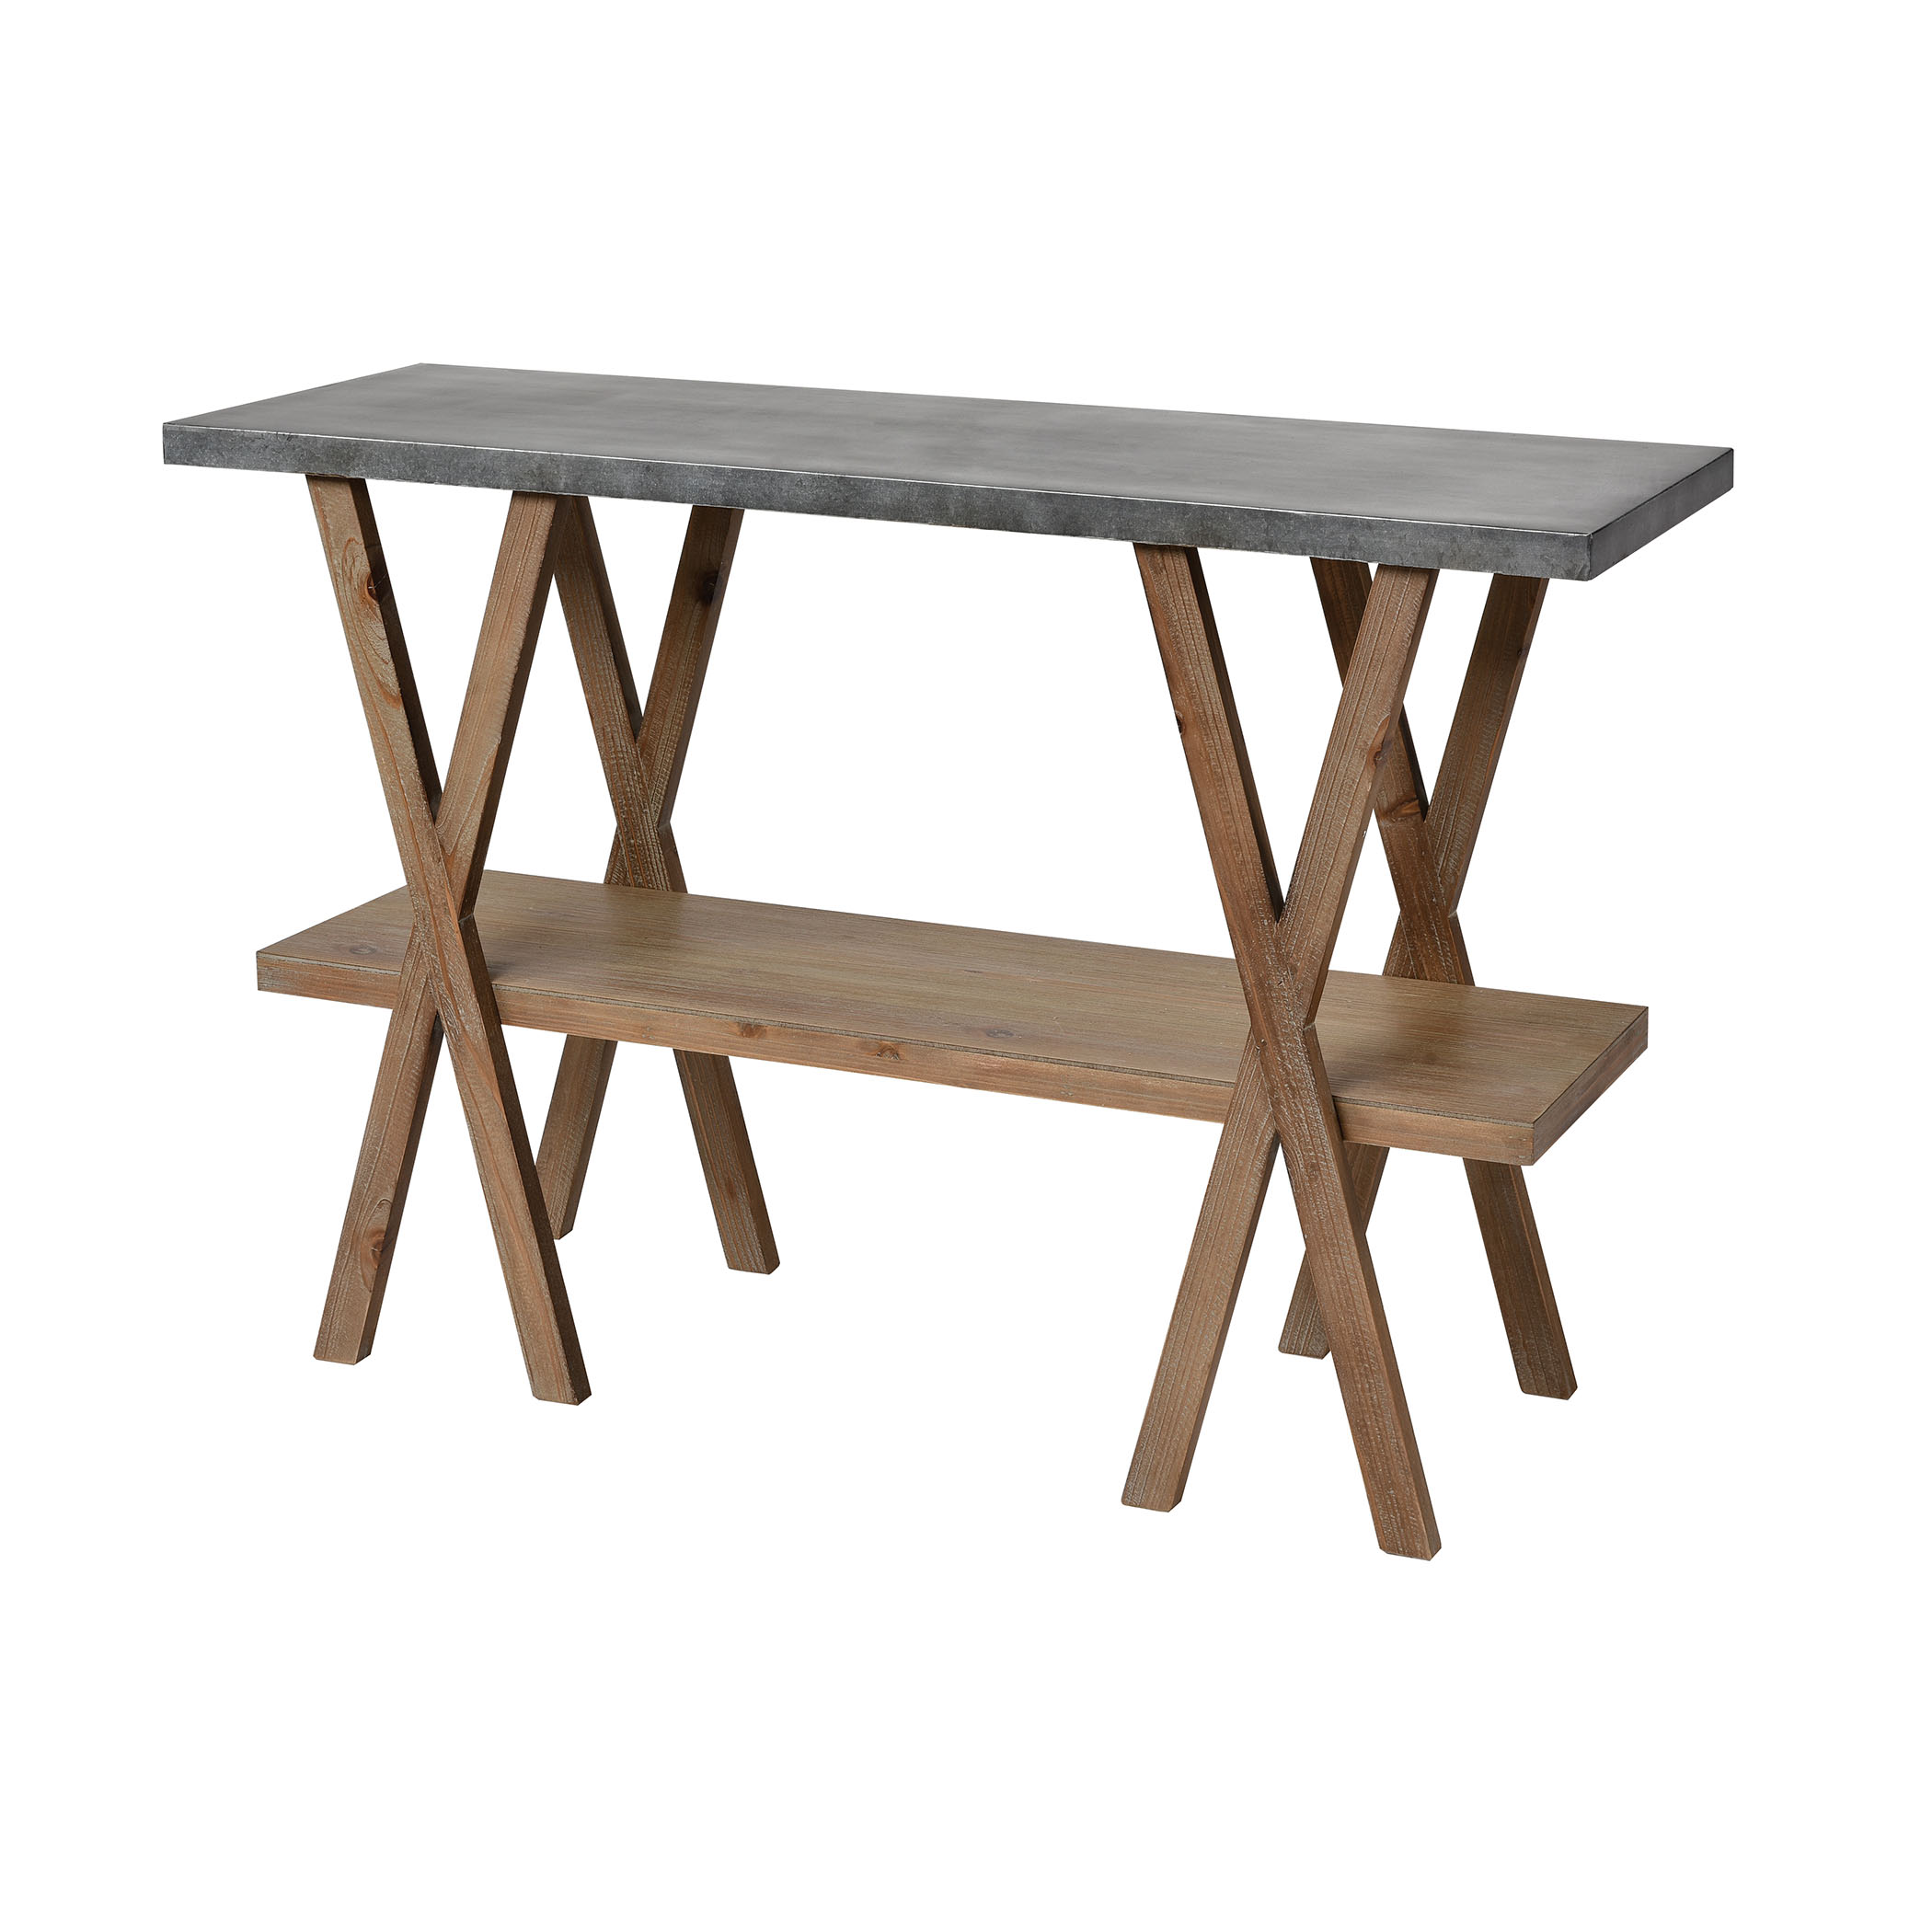 Winterfell Console Table in Natural Wood and Antique Galvanized Steel | Elk Home